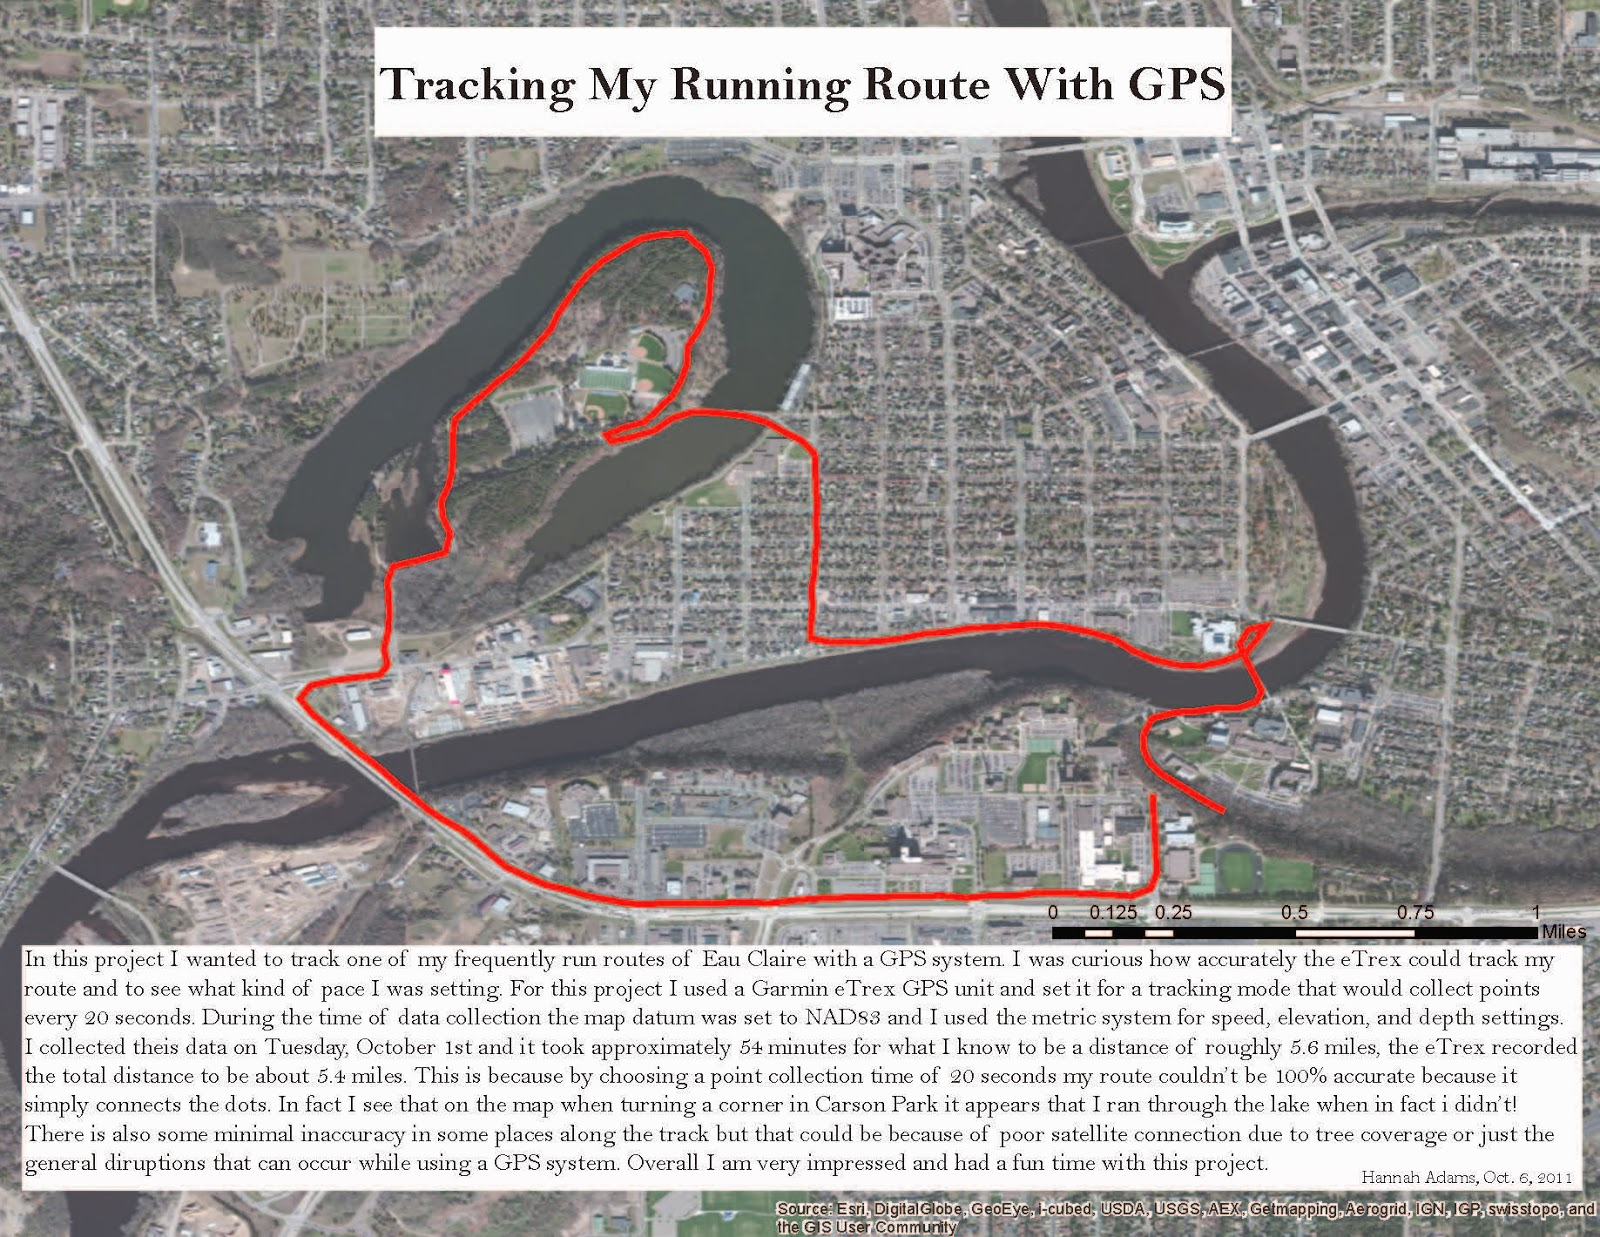 for this project i used a garmin etrex gps unit and set it for a tracking mode that would collect points every 20 seconds during my run afterwards i